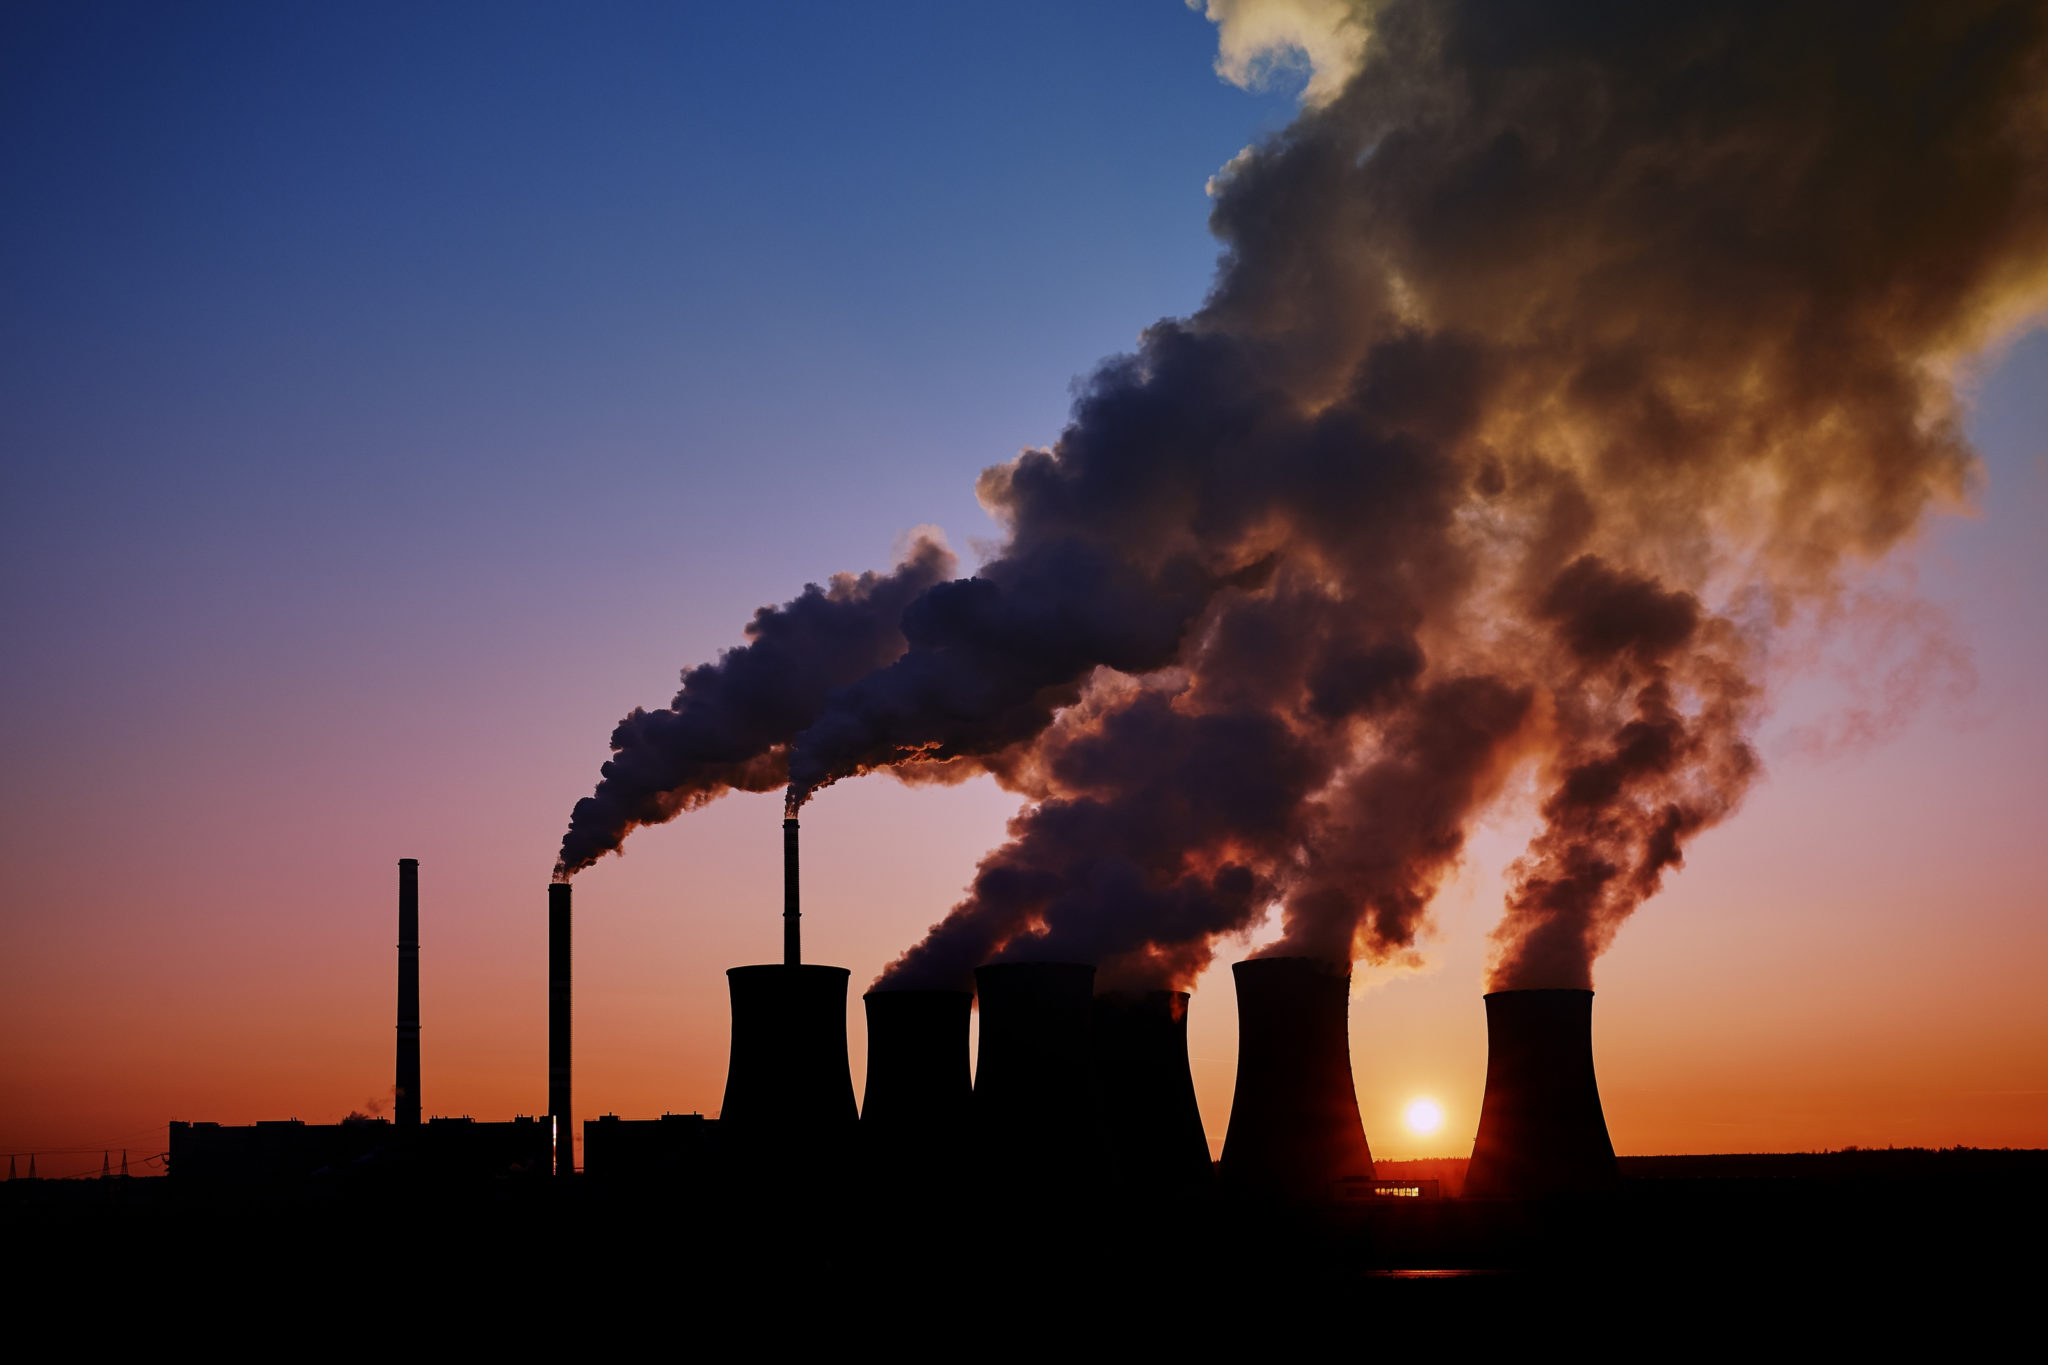 When Will Fossil Fuels Run Out?